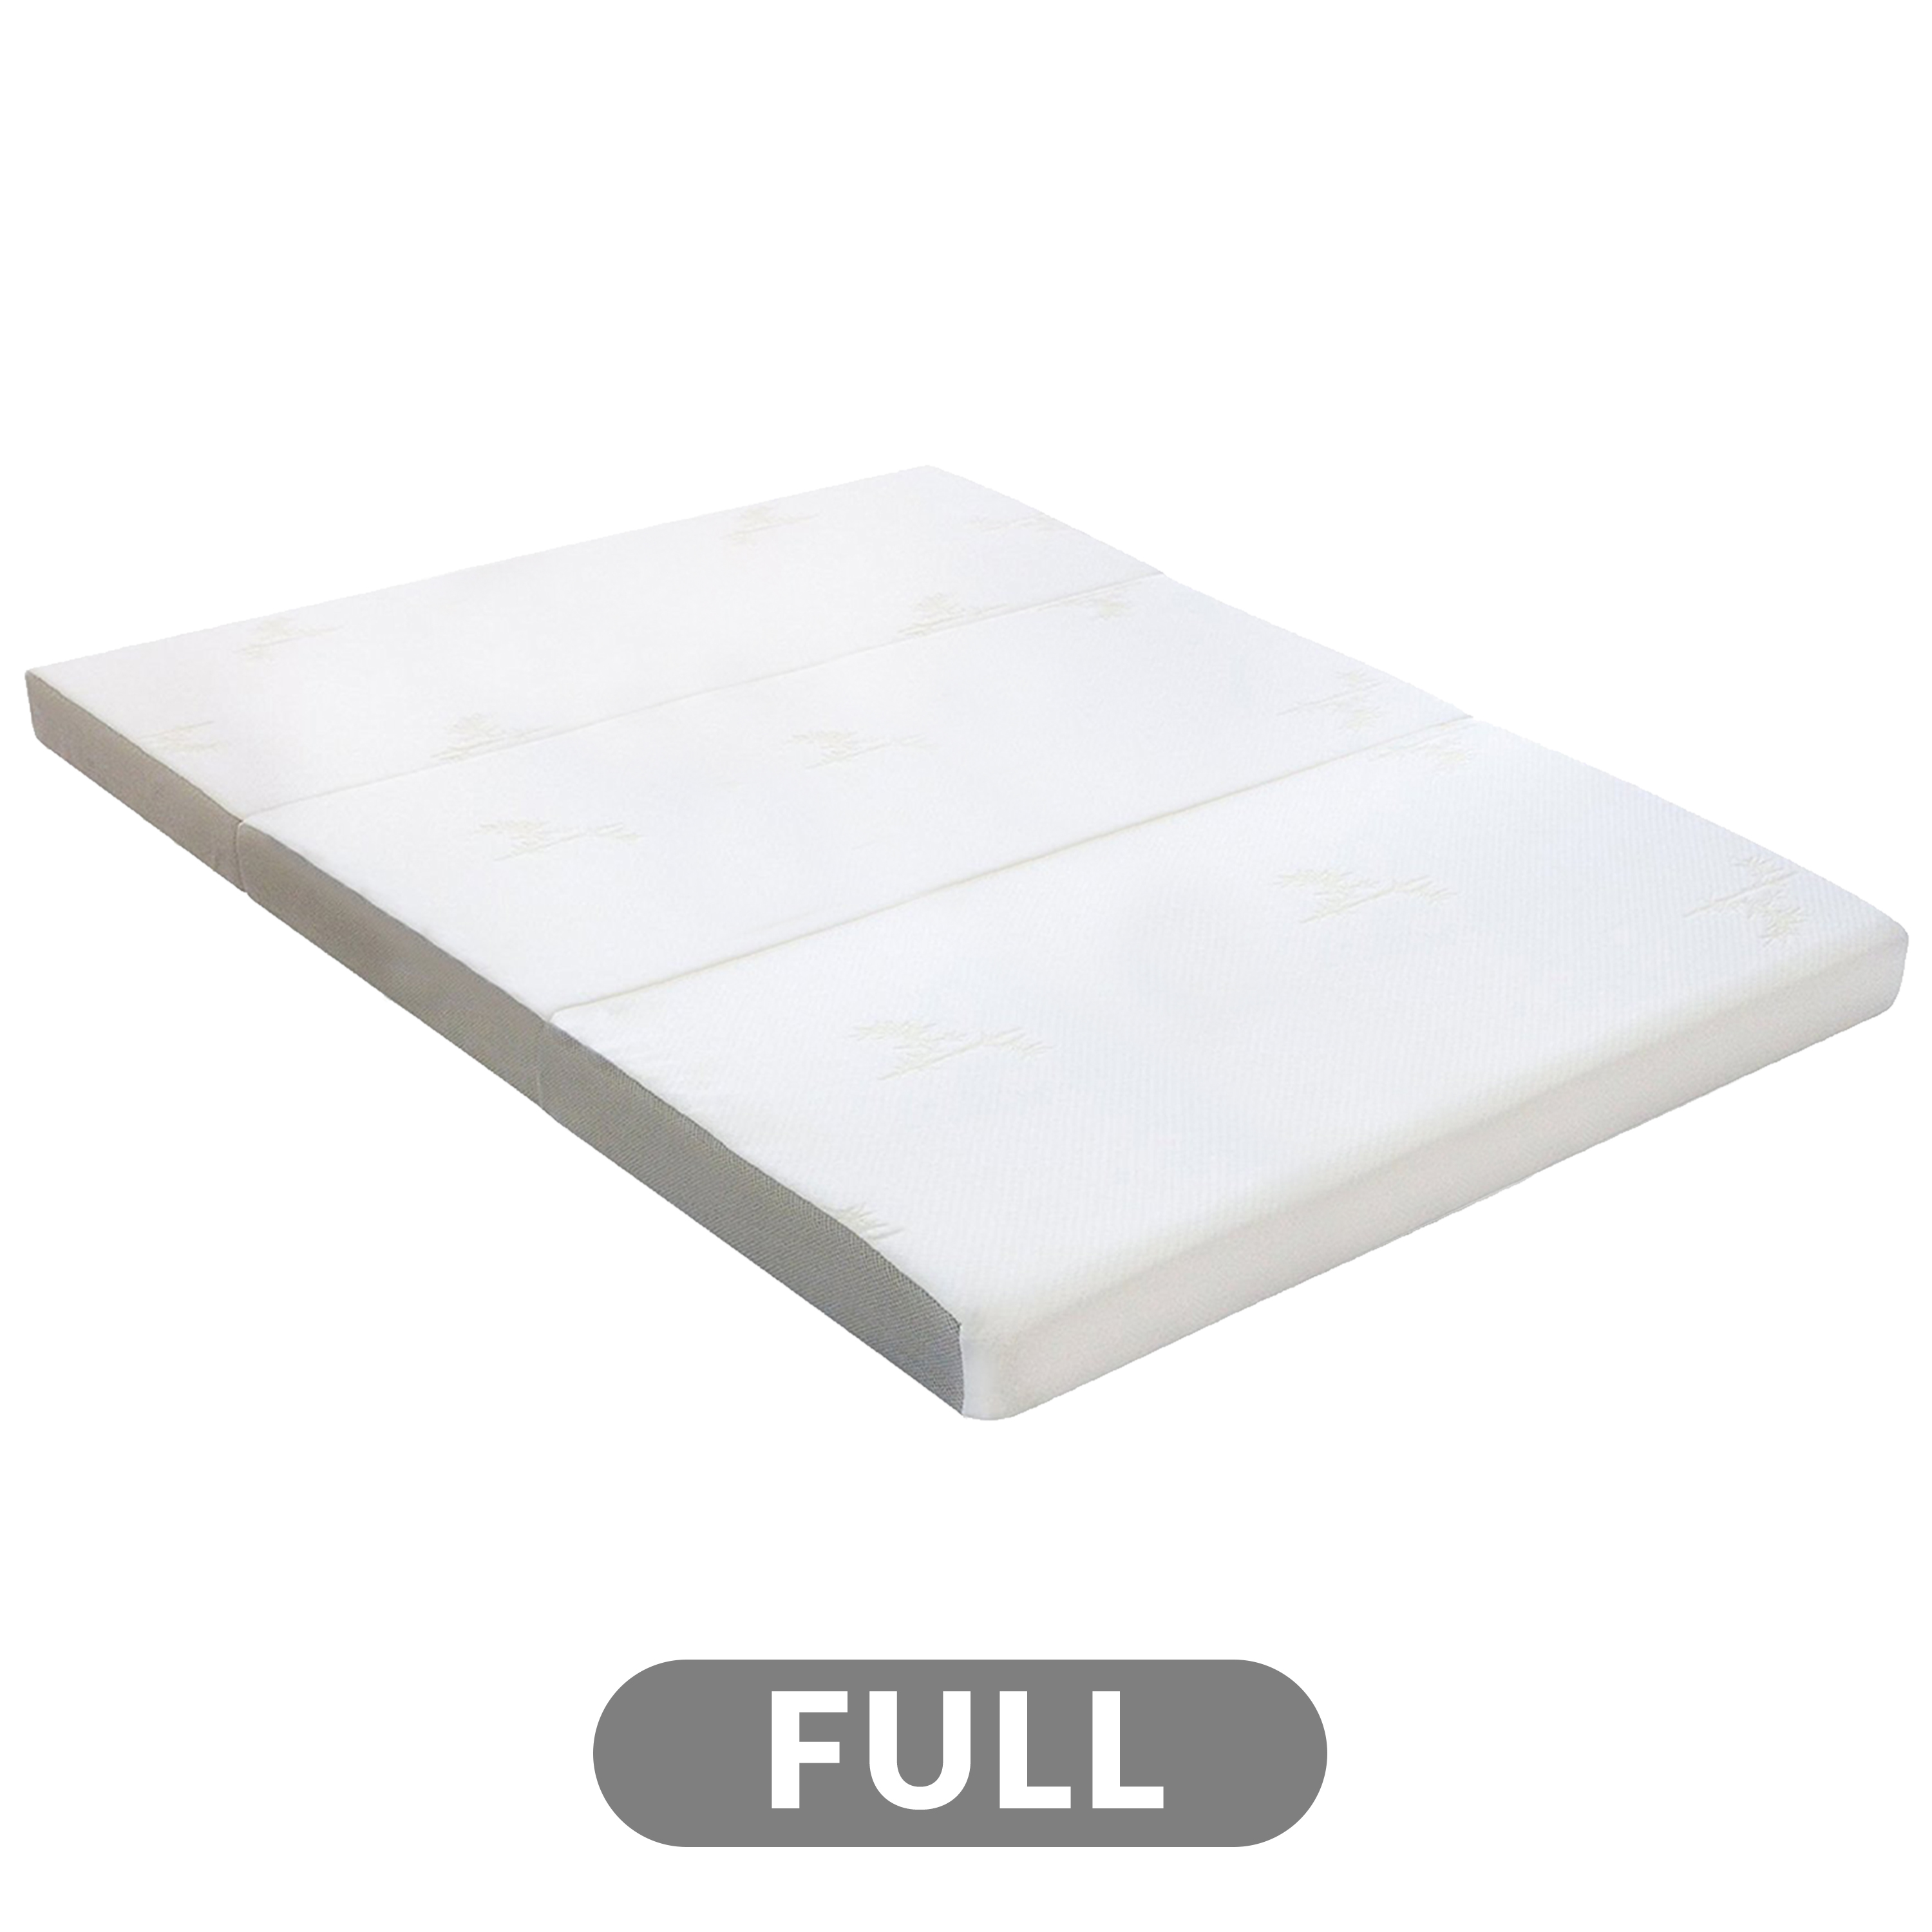 4 Tri Fold Foam Mattress With Cover Full Milliard Bedding The Ultimate Sleep Experience